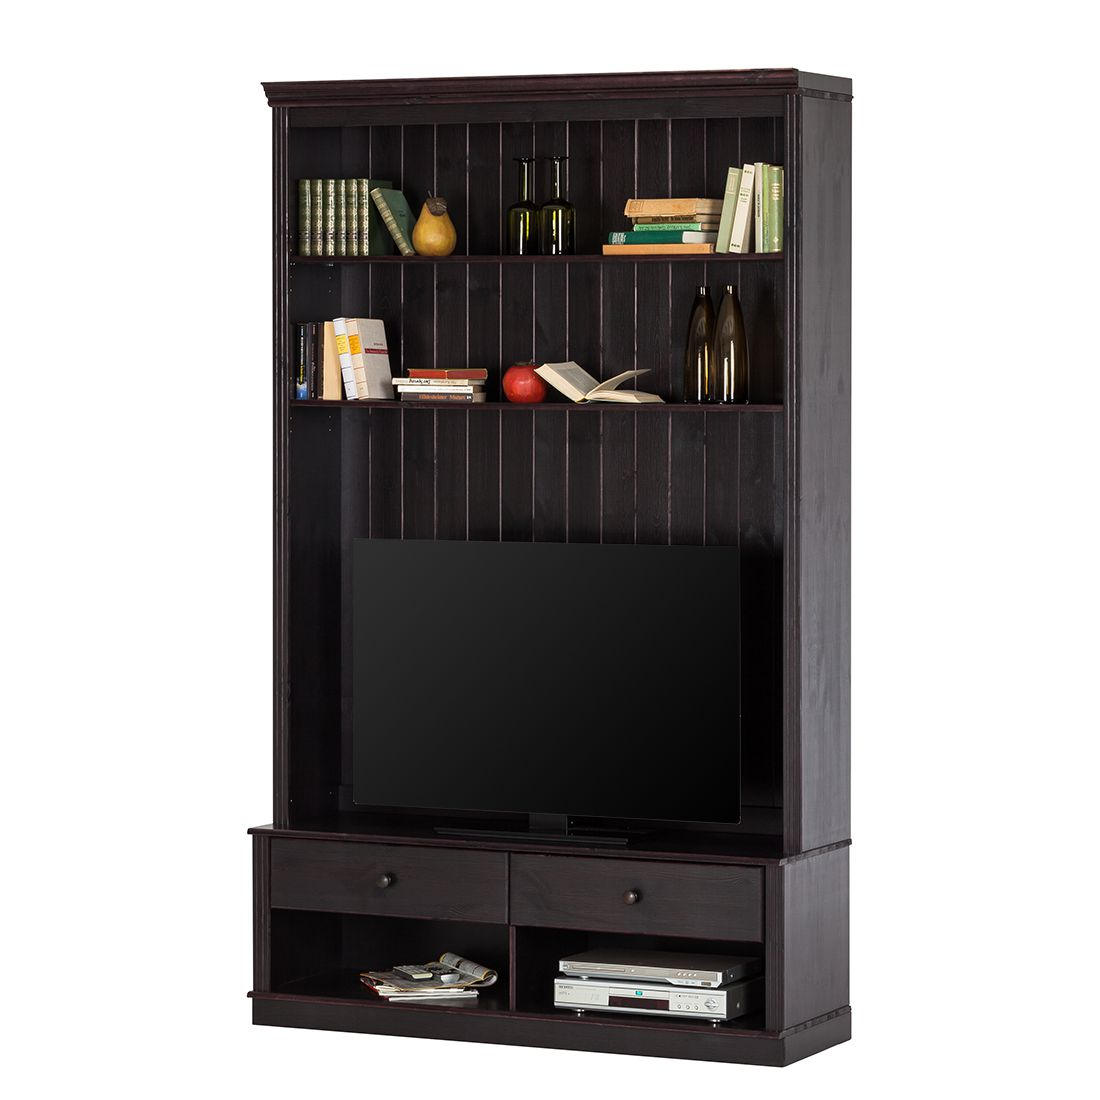 tv lowboard lillehammer ii kiefer massiv havanna lars larson online bestellen. Black Bedroom Furniture Sets. Home Design Ideas